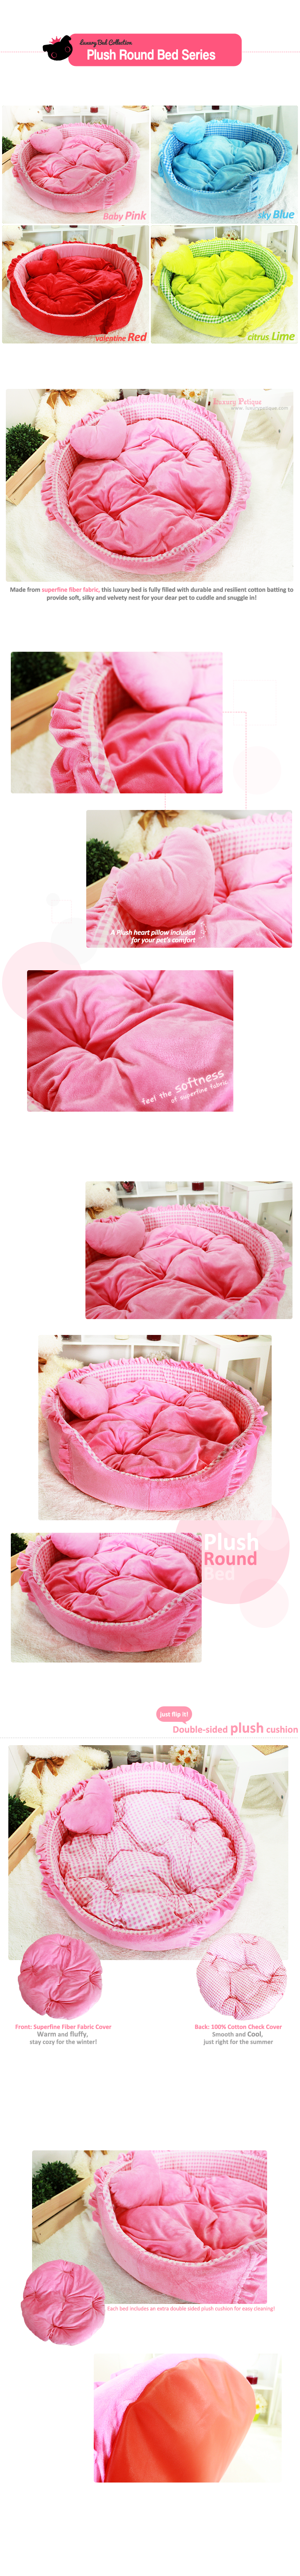 plush-round-bed-1.png